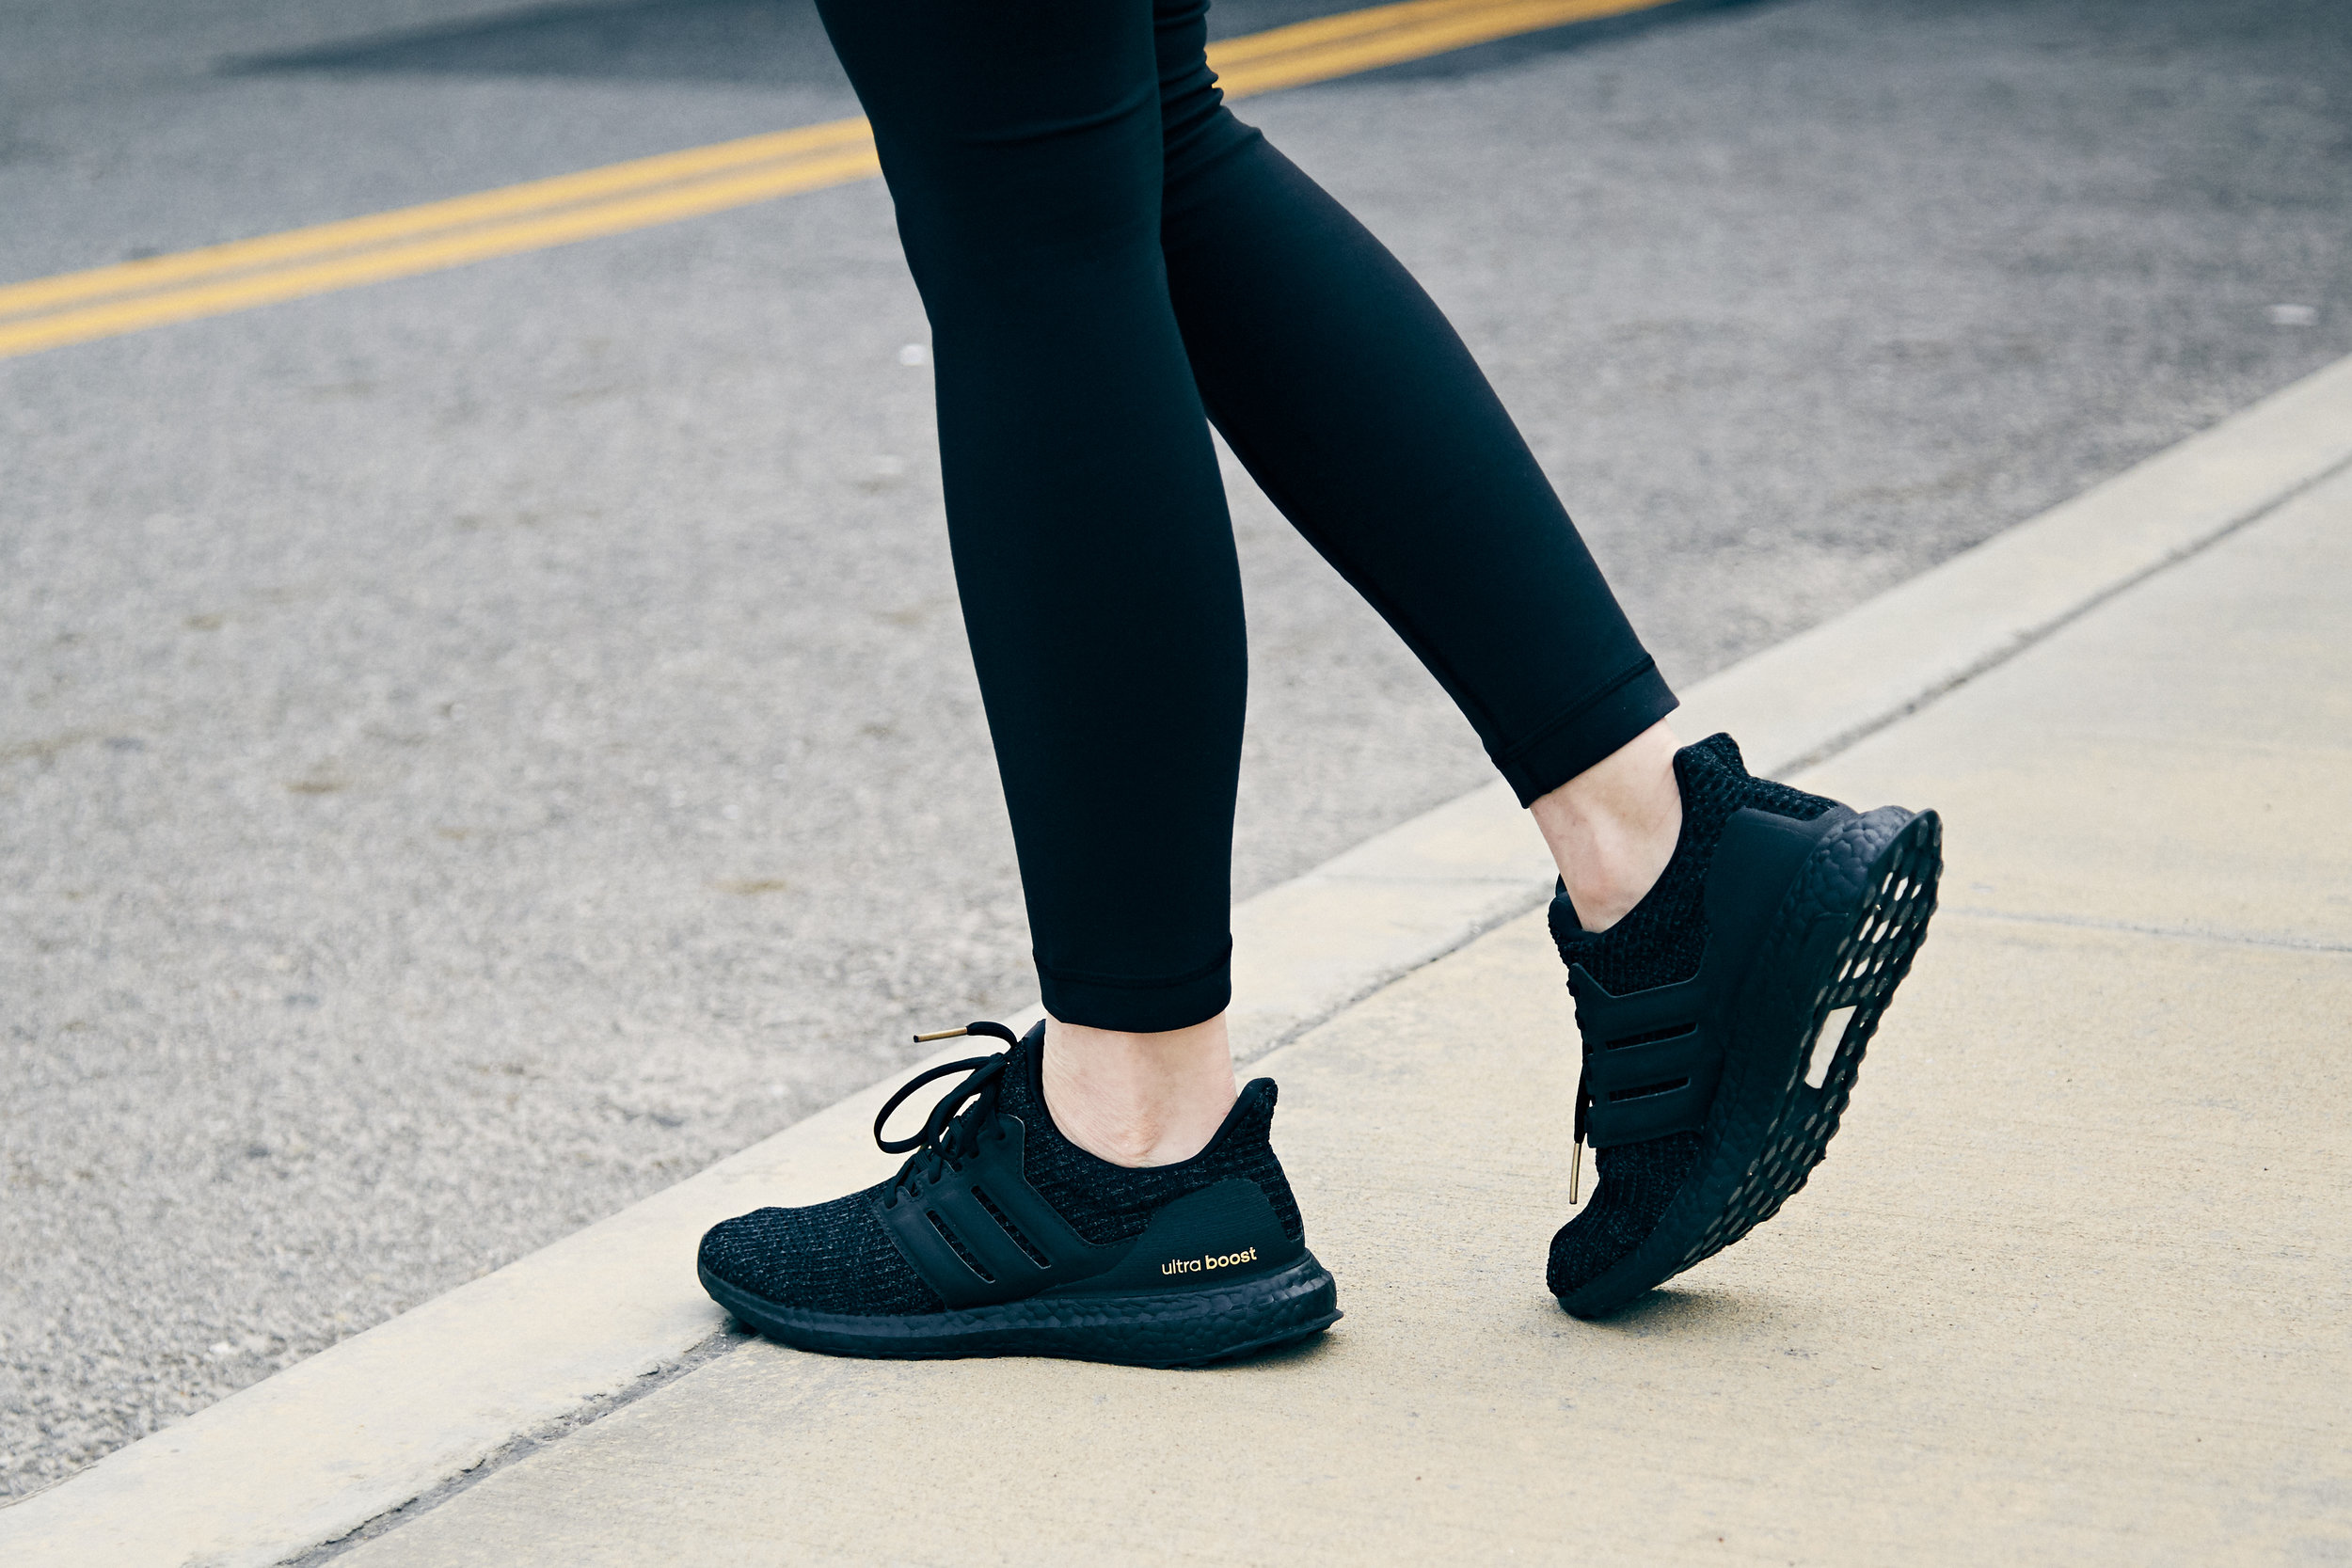 b946421f2 20190218 adidas IWD 0056 (1).jpg. Images    alyssamay     eatrightrun. To  continue celebrating today